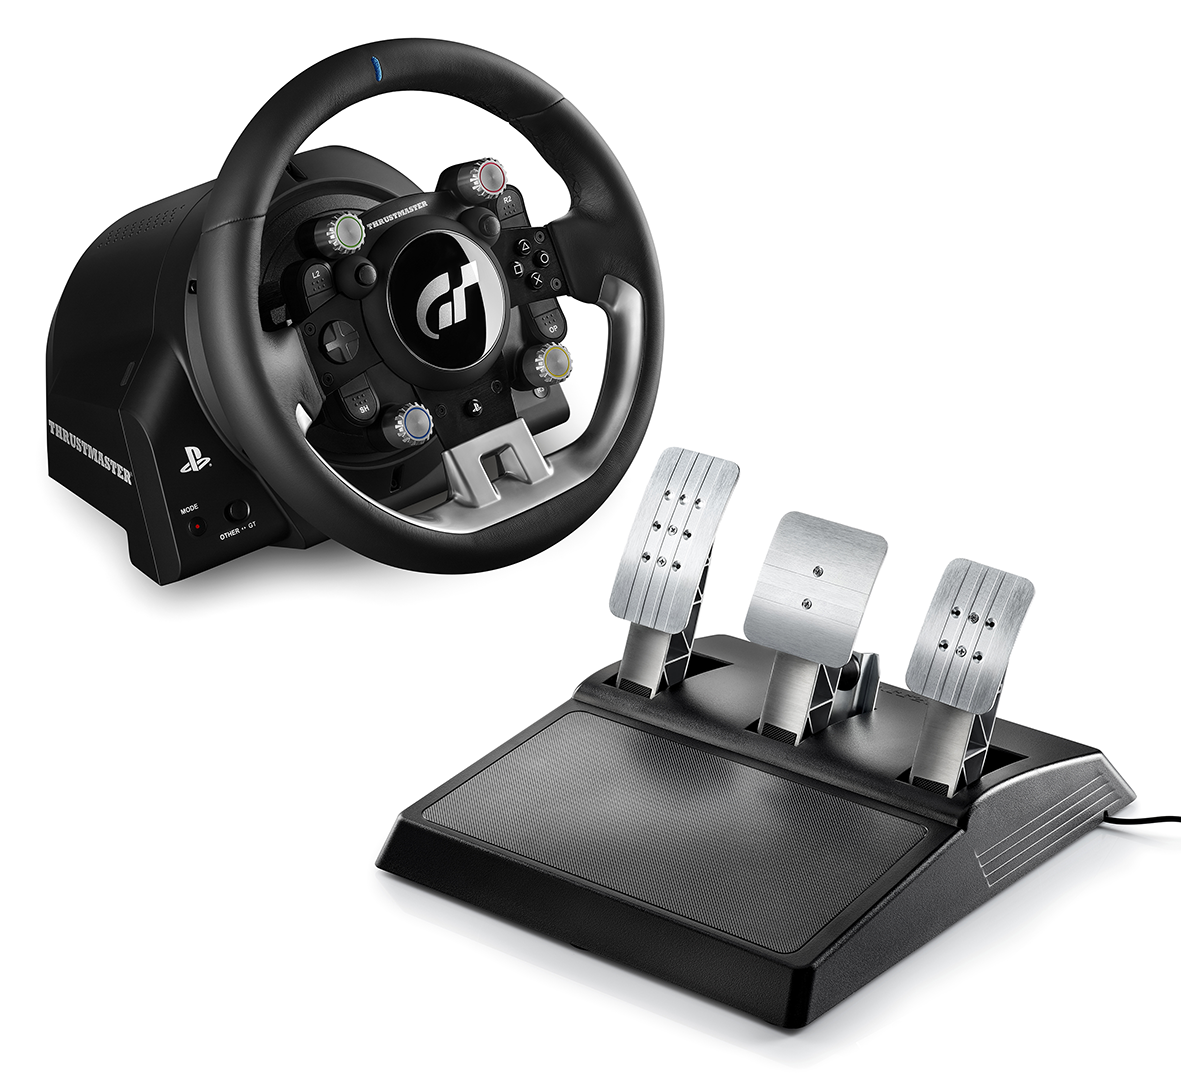 f162c06abef Wheels and pedals - Accessories - For all your racing needs